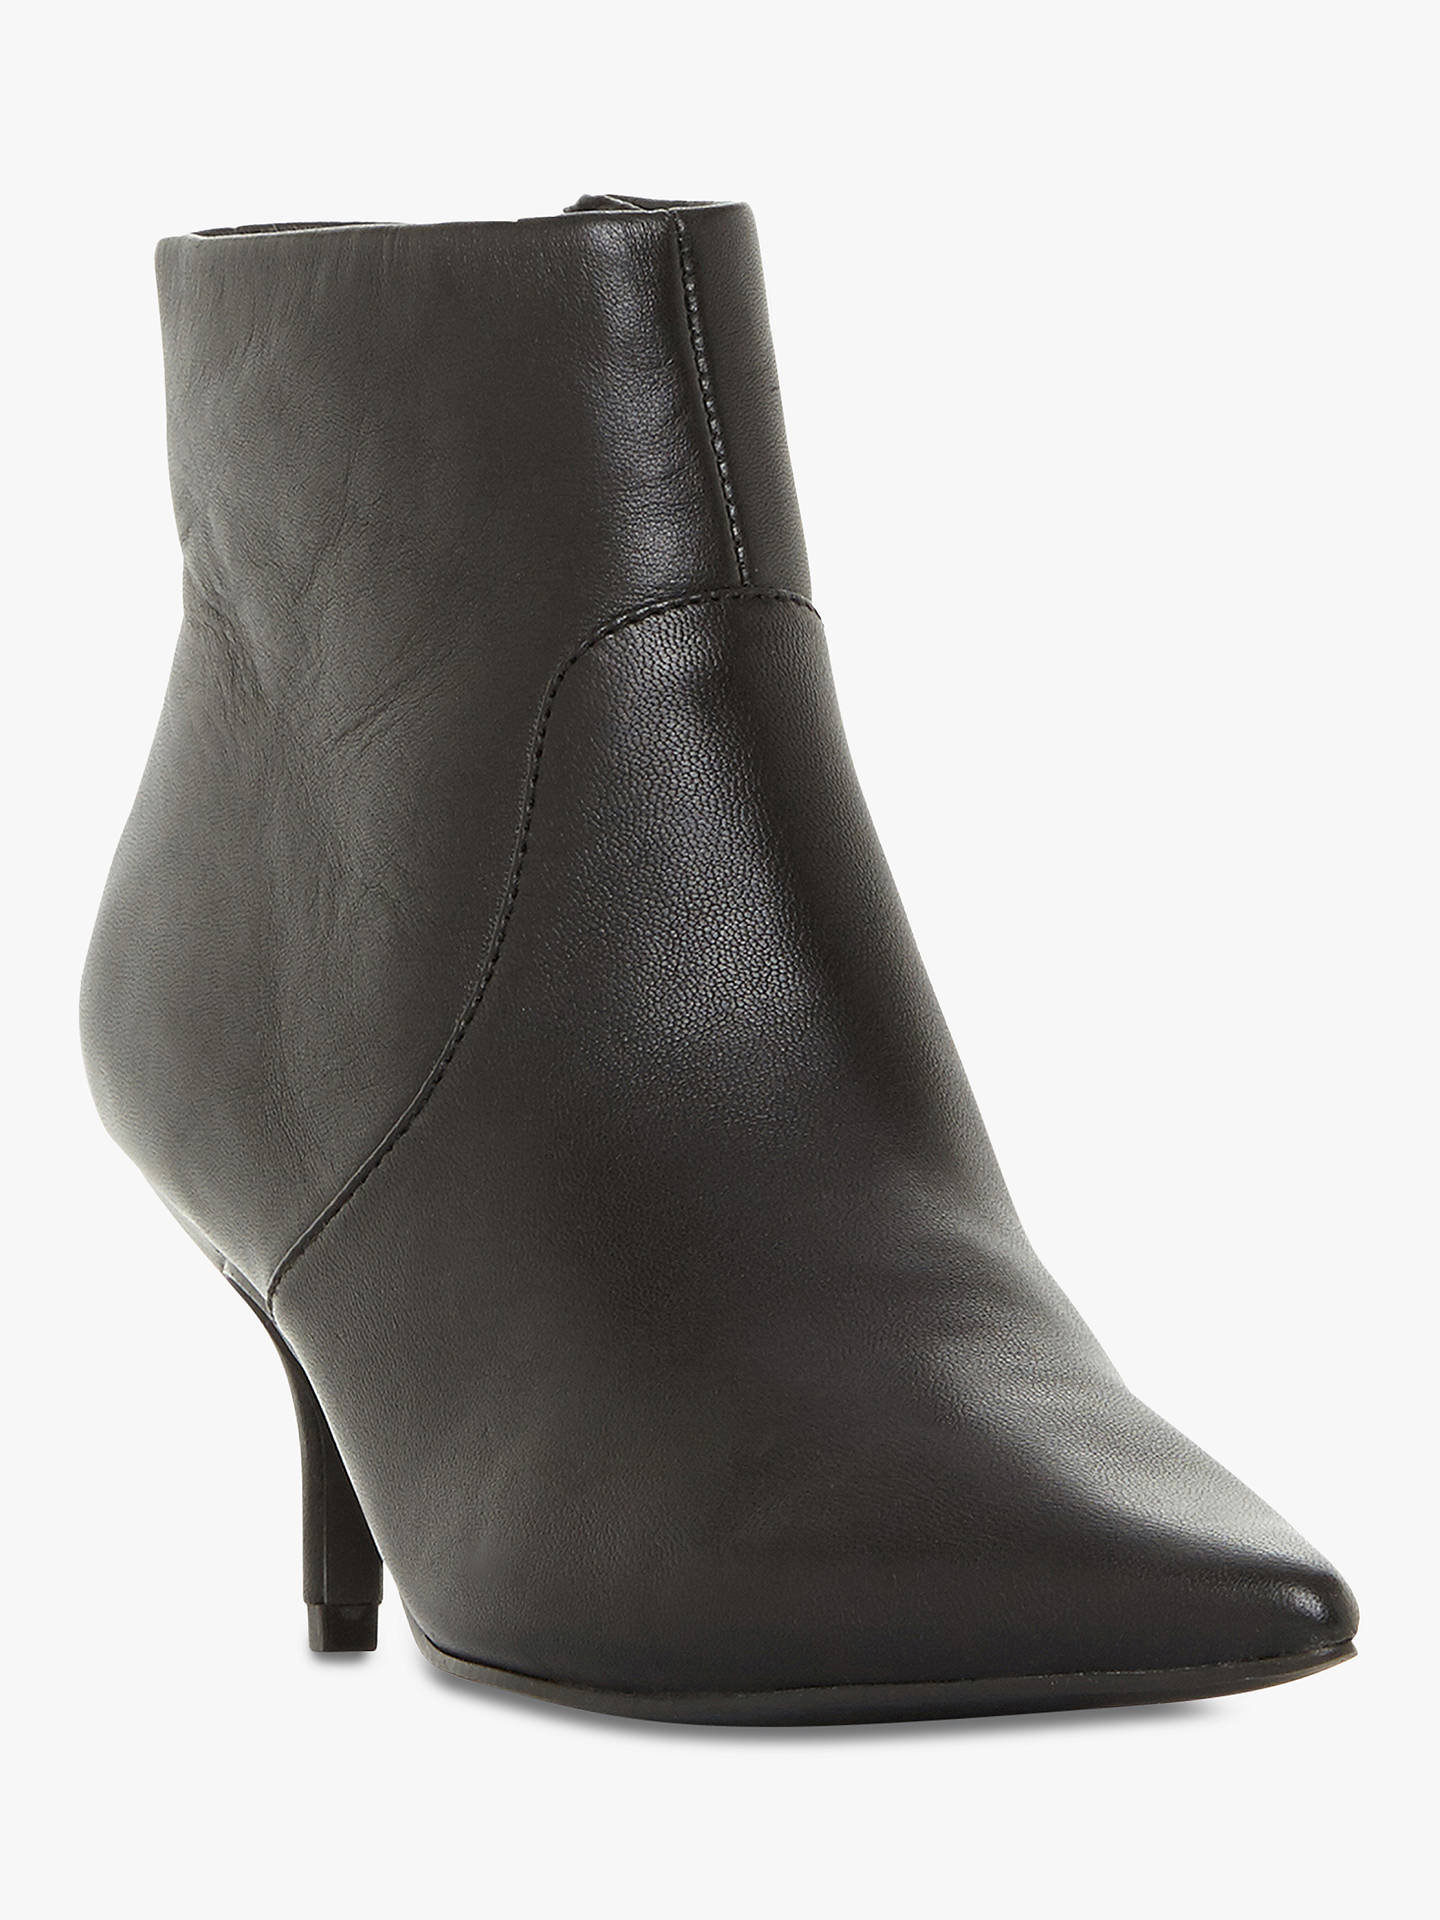 Buy Steve Madden Rome Stiletto Heel Ankle Boots, Black Leather, 4 Online at johnlewis.com